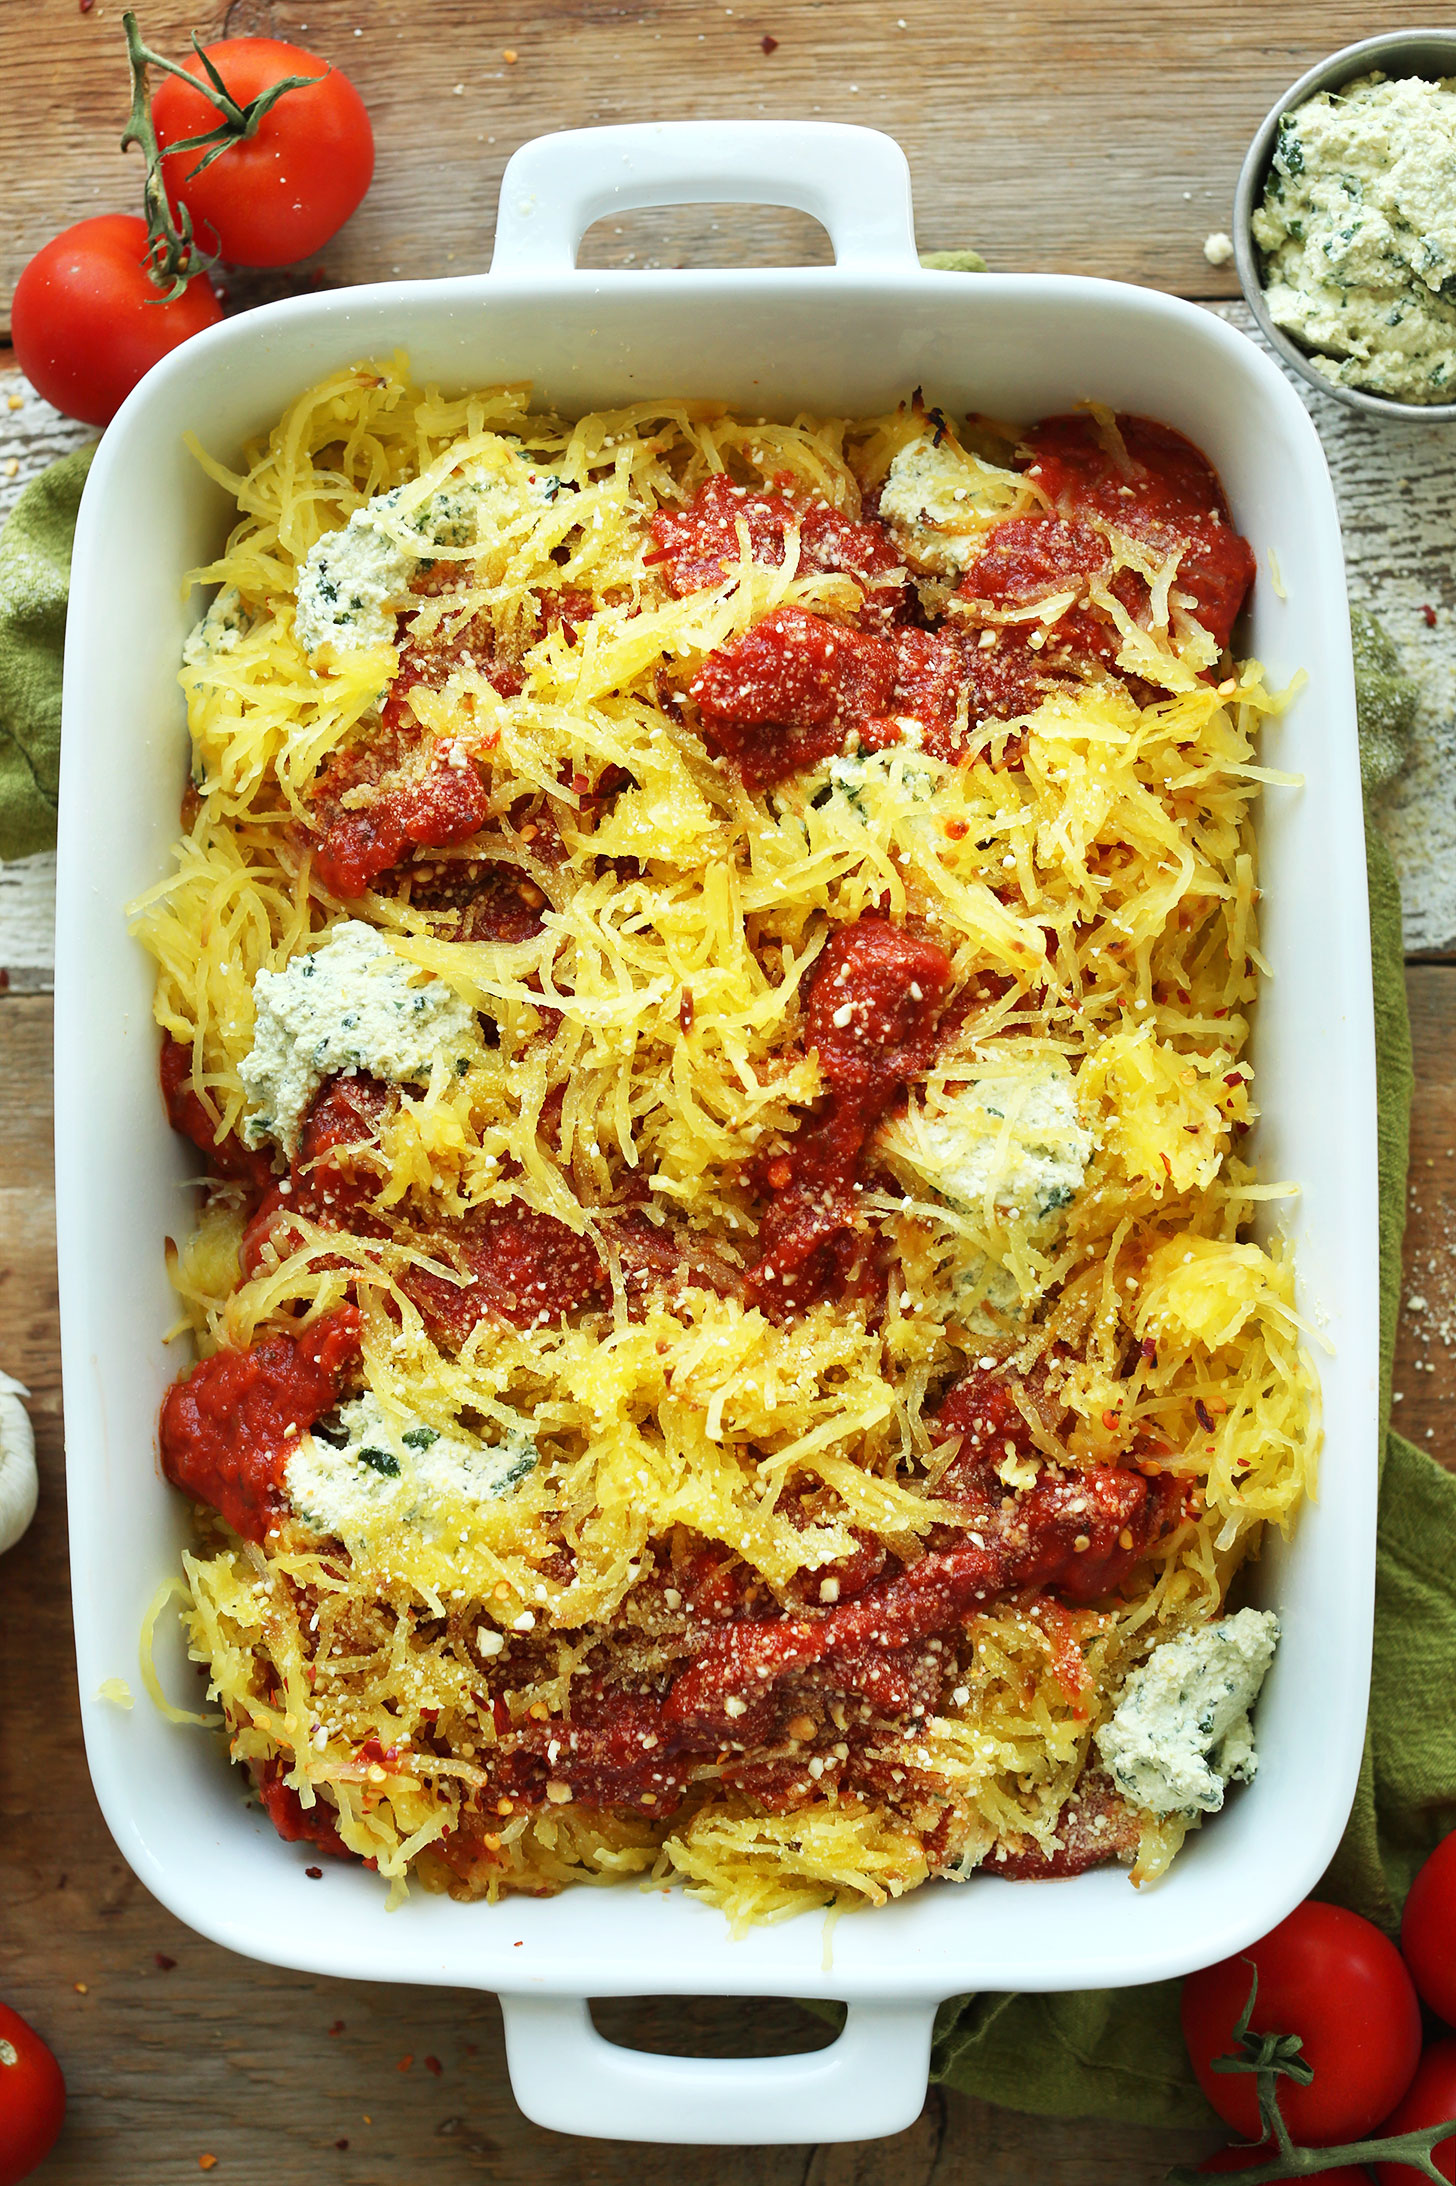 Healthy Spaghetti Squash Lasagna Bake 10 Ingrents Plant Based So Delicious